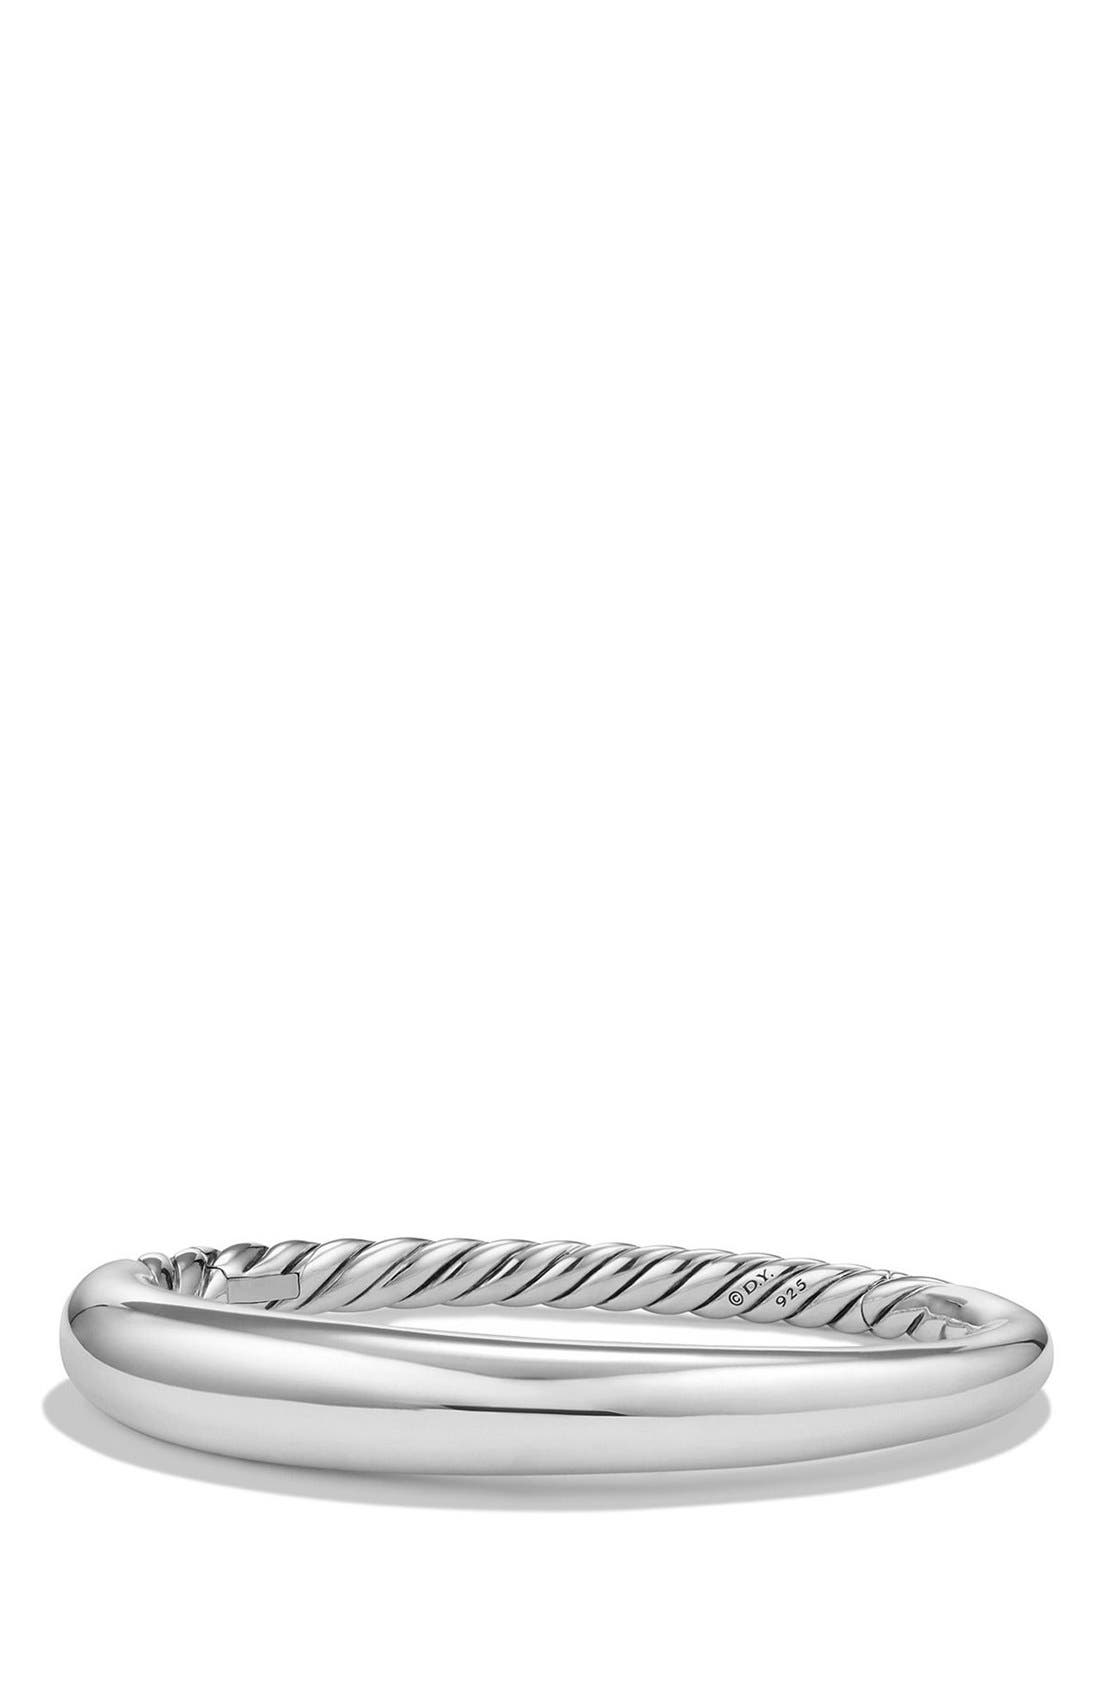 Alternate Image 1 Selected - David Yurman 'Pure Form' Small Sterling Silver Bracelet